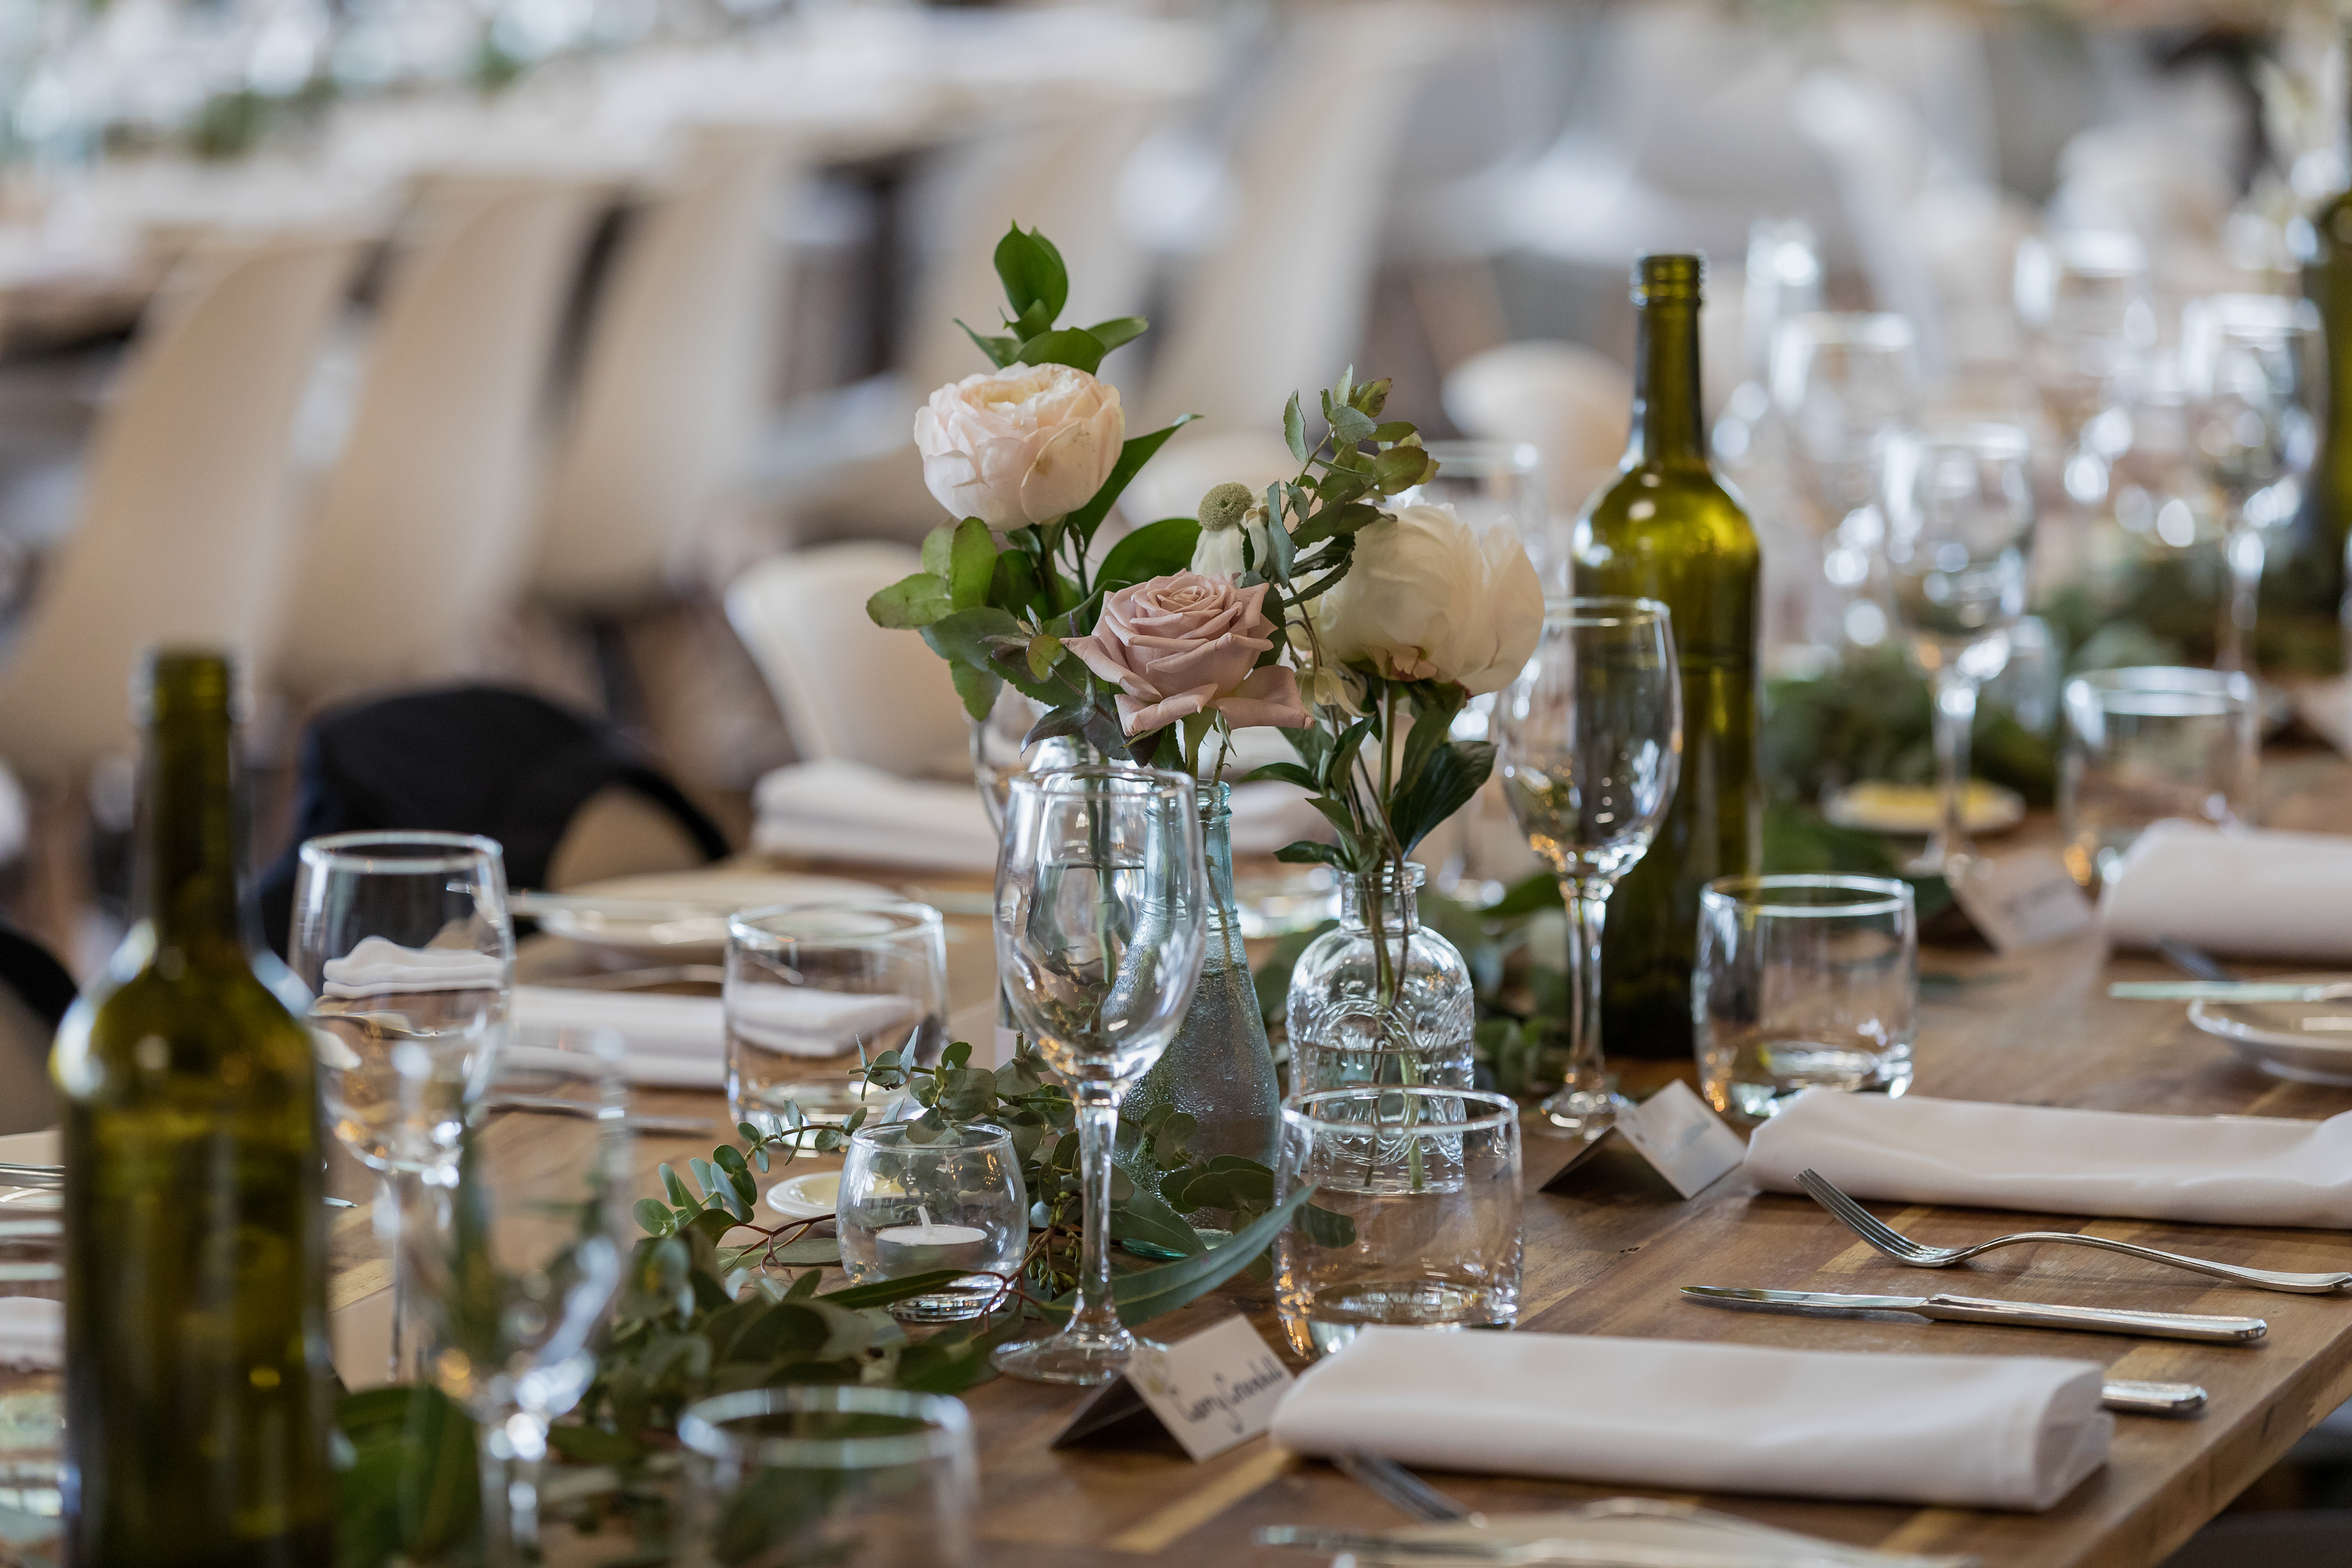 Wedding table setting with roses